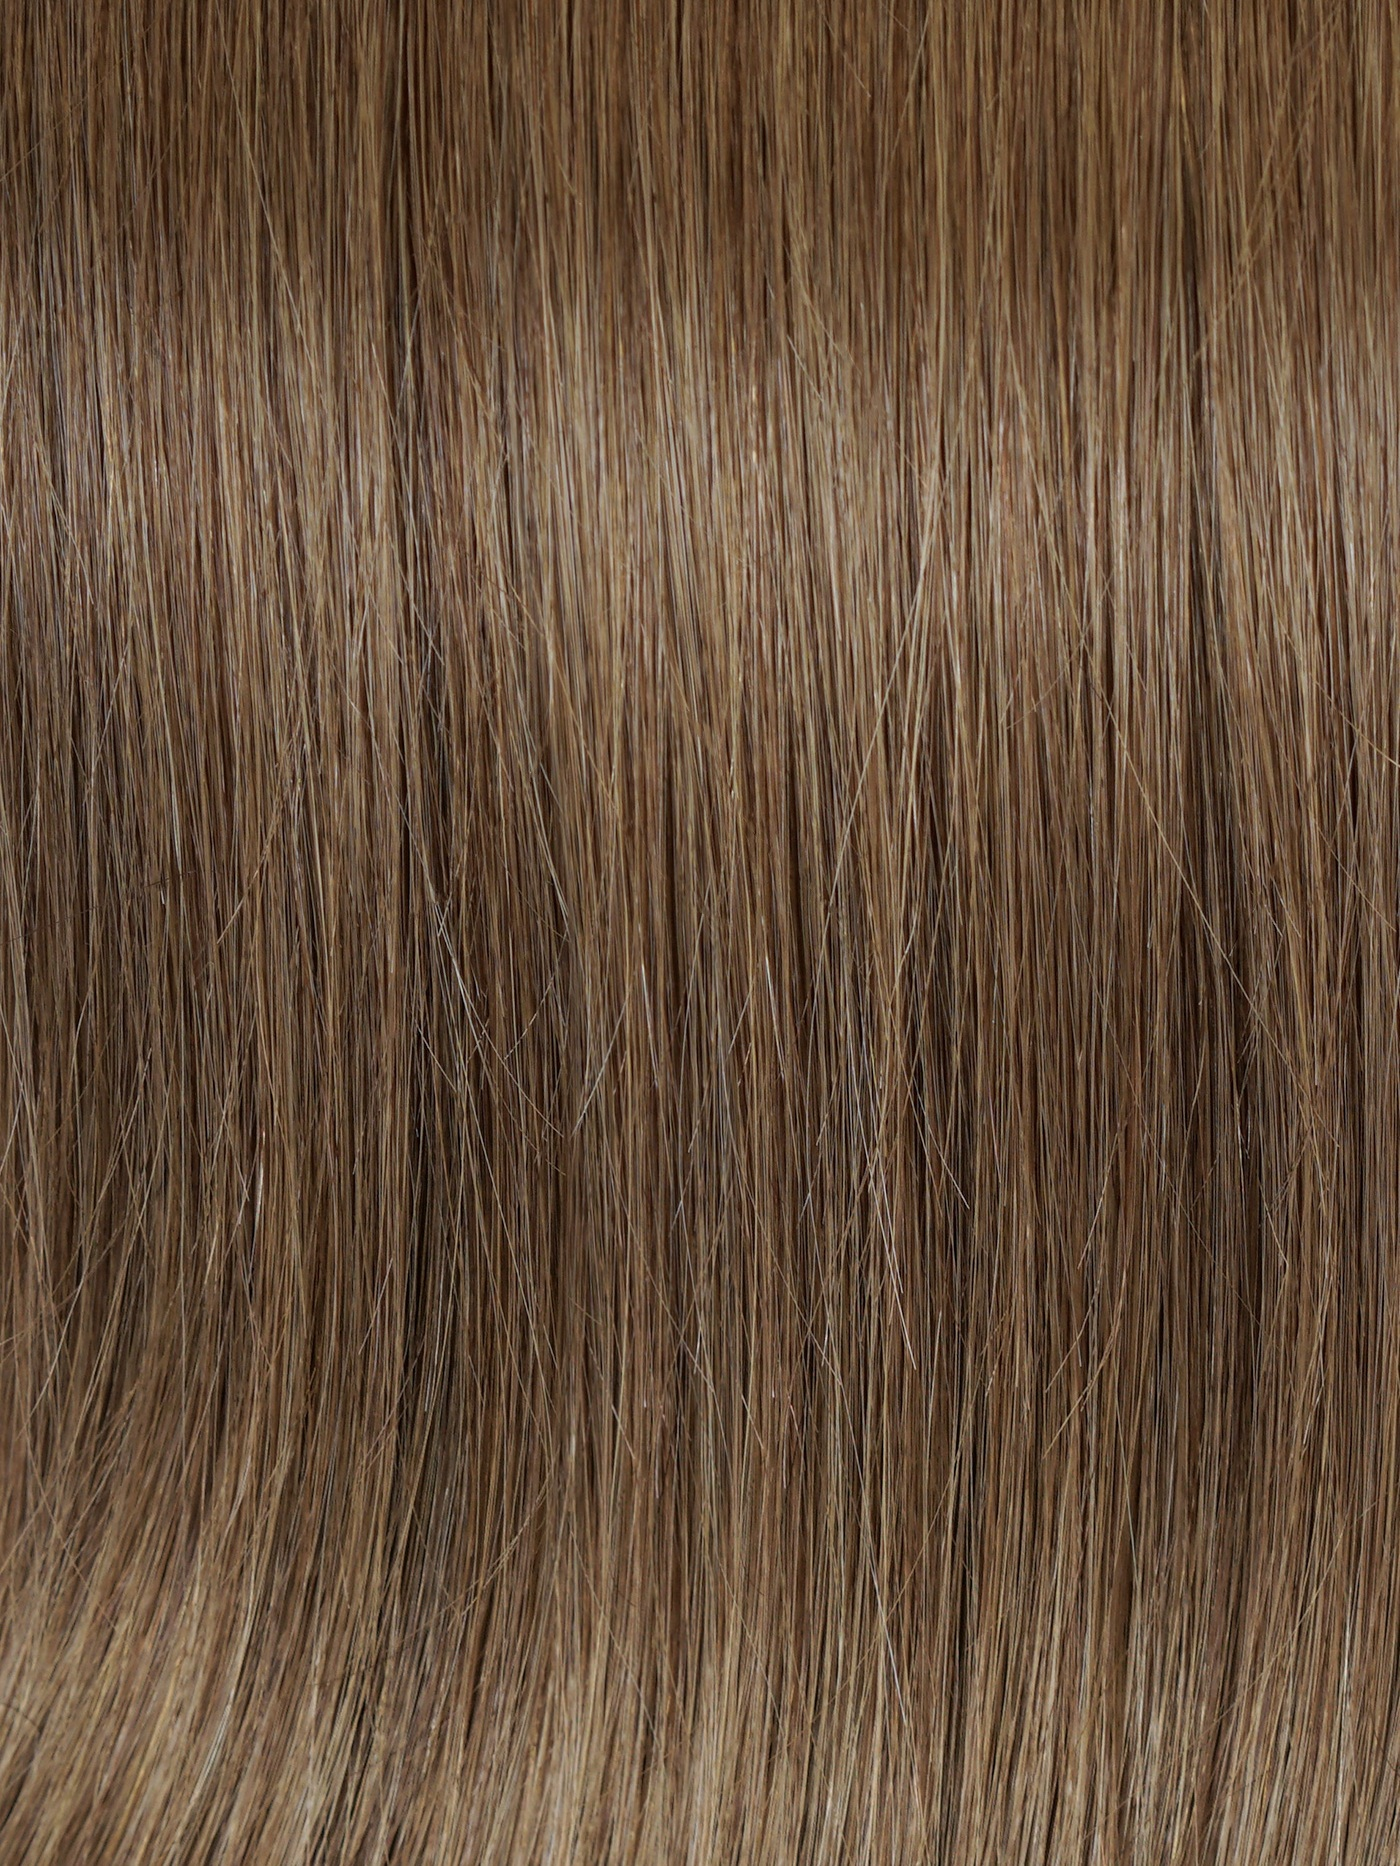 CHESTNUT BROWN #6 - Warm hues give fall vibes all year round in this lighter brown shade set. This is our lightest brown in a solid color.